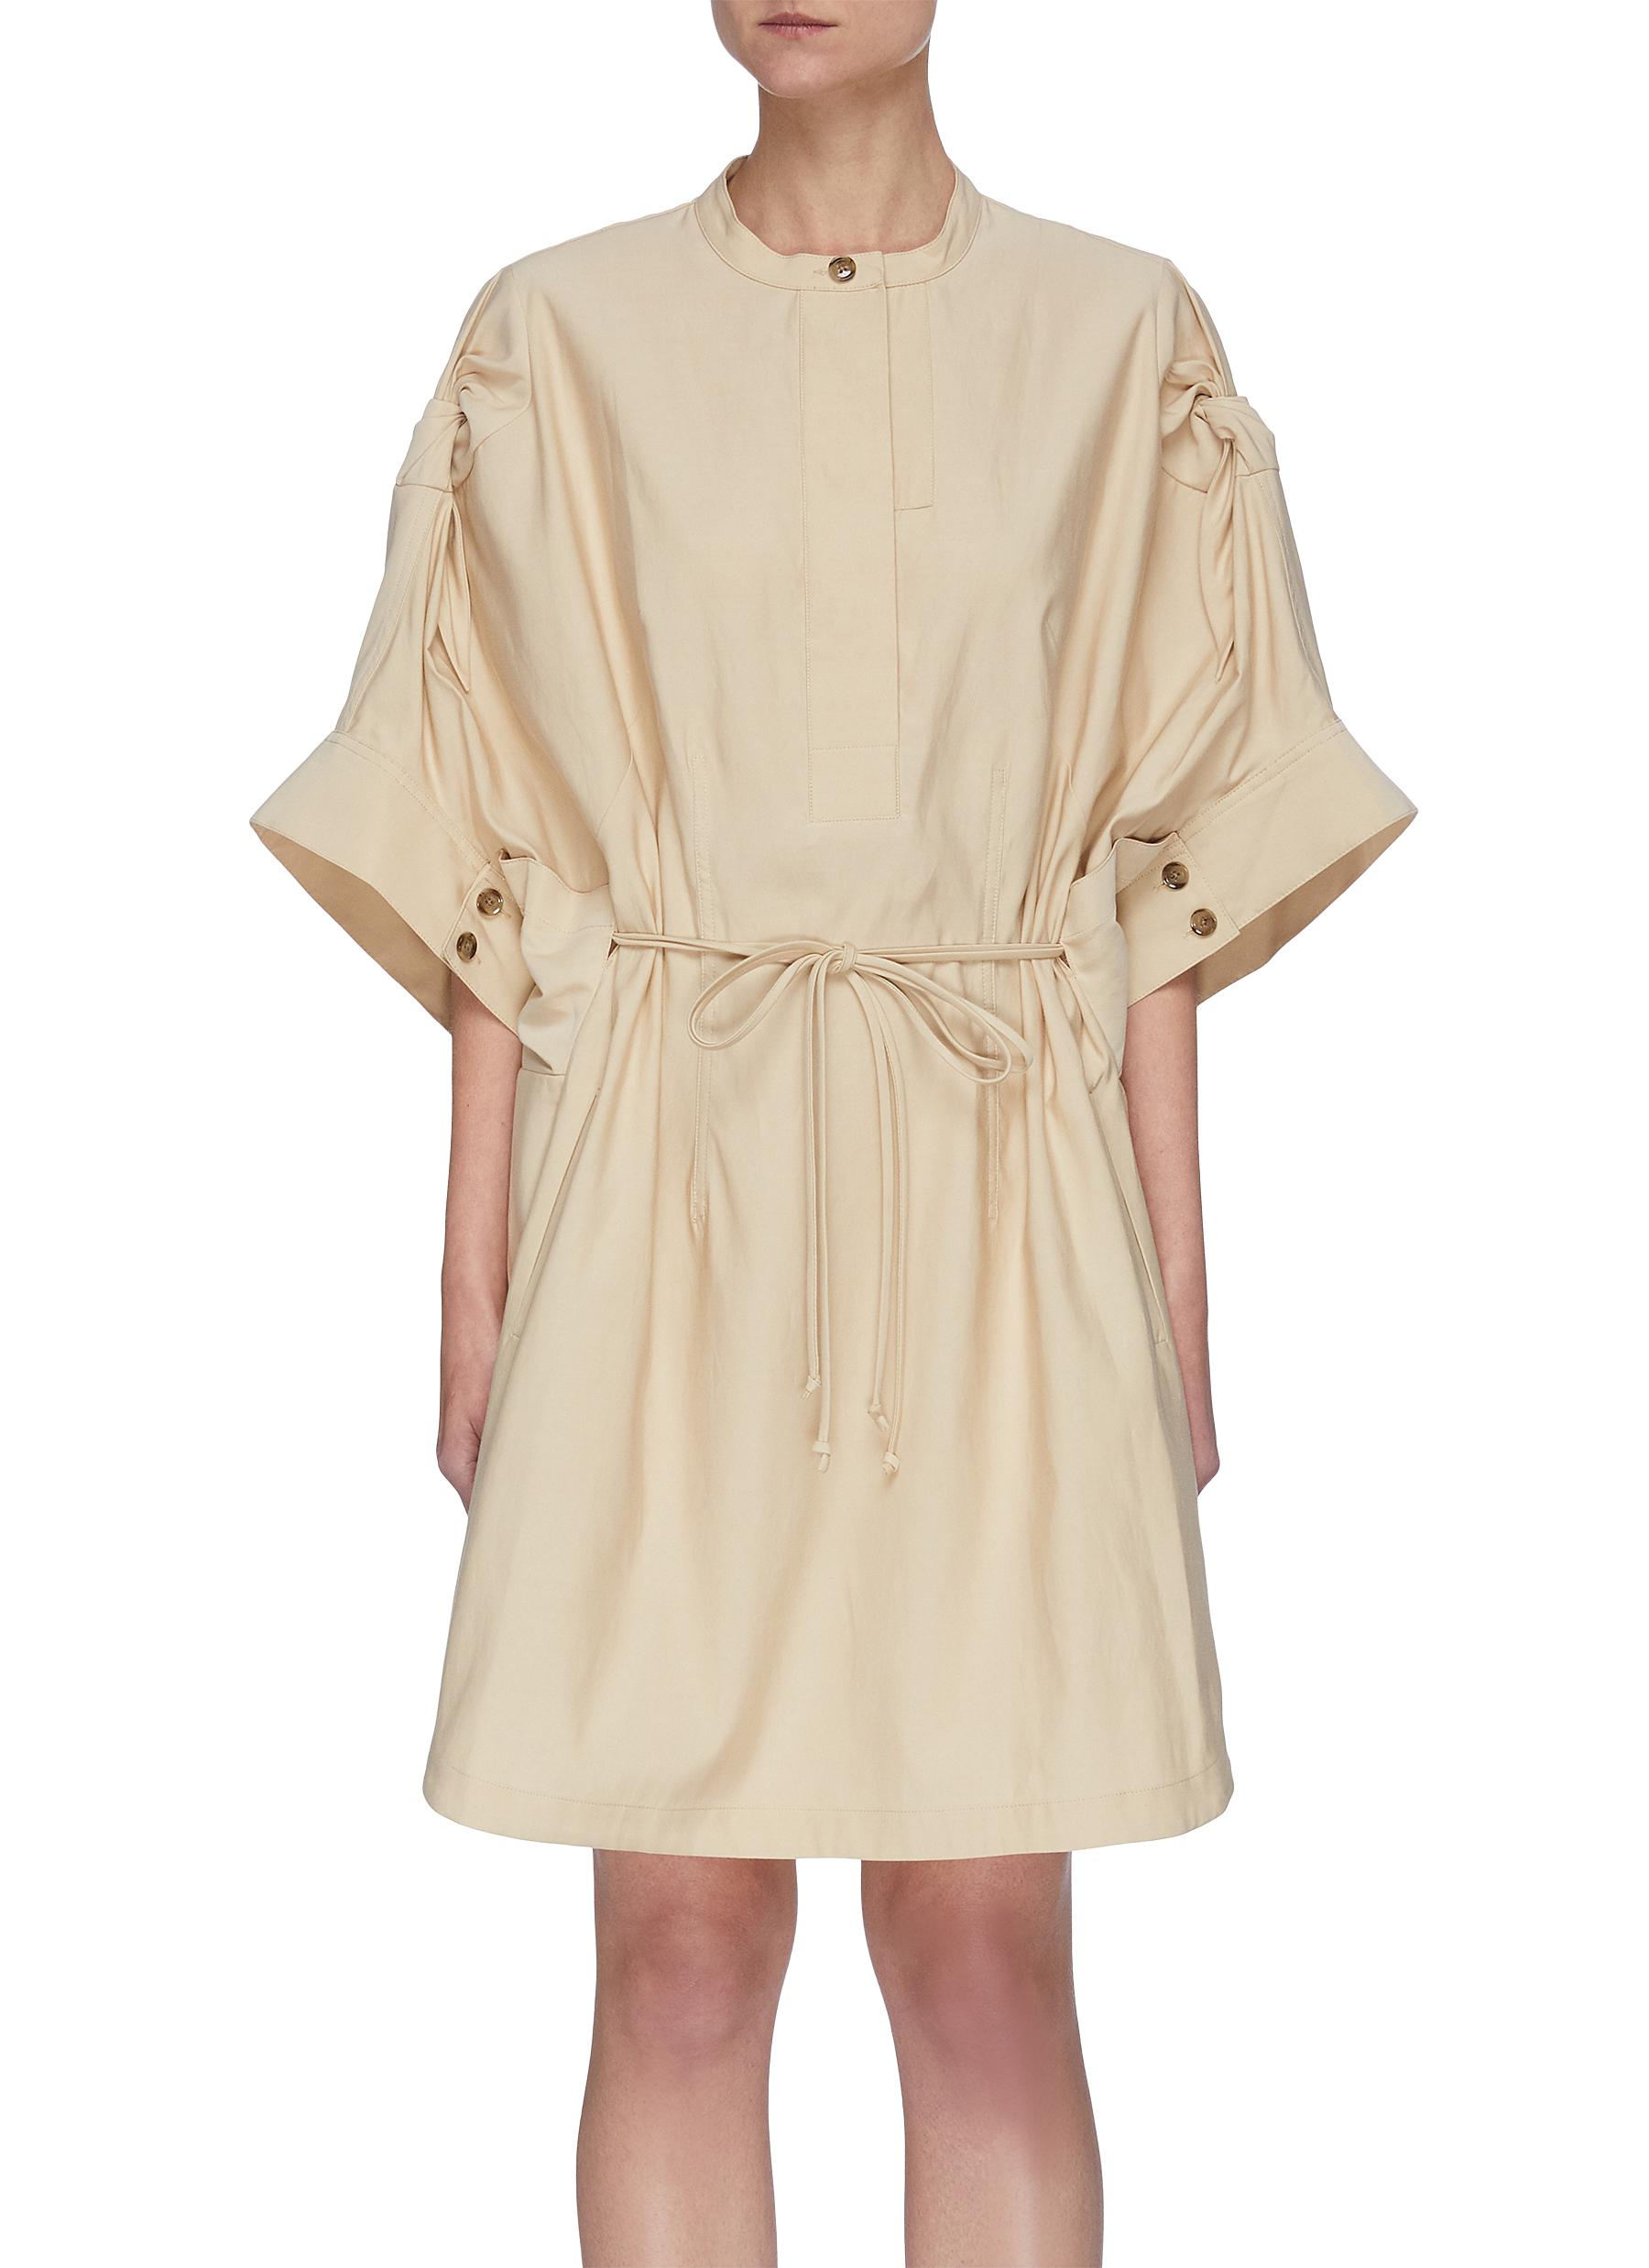 3.1 Phillip Lim LOOSE KNOTTED SLEEVES DRAWSTRING WAIST DRESS